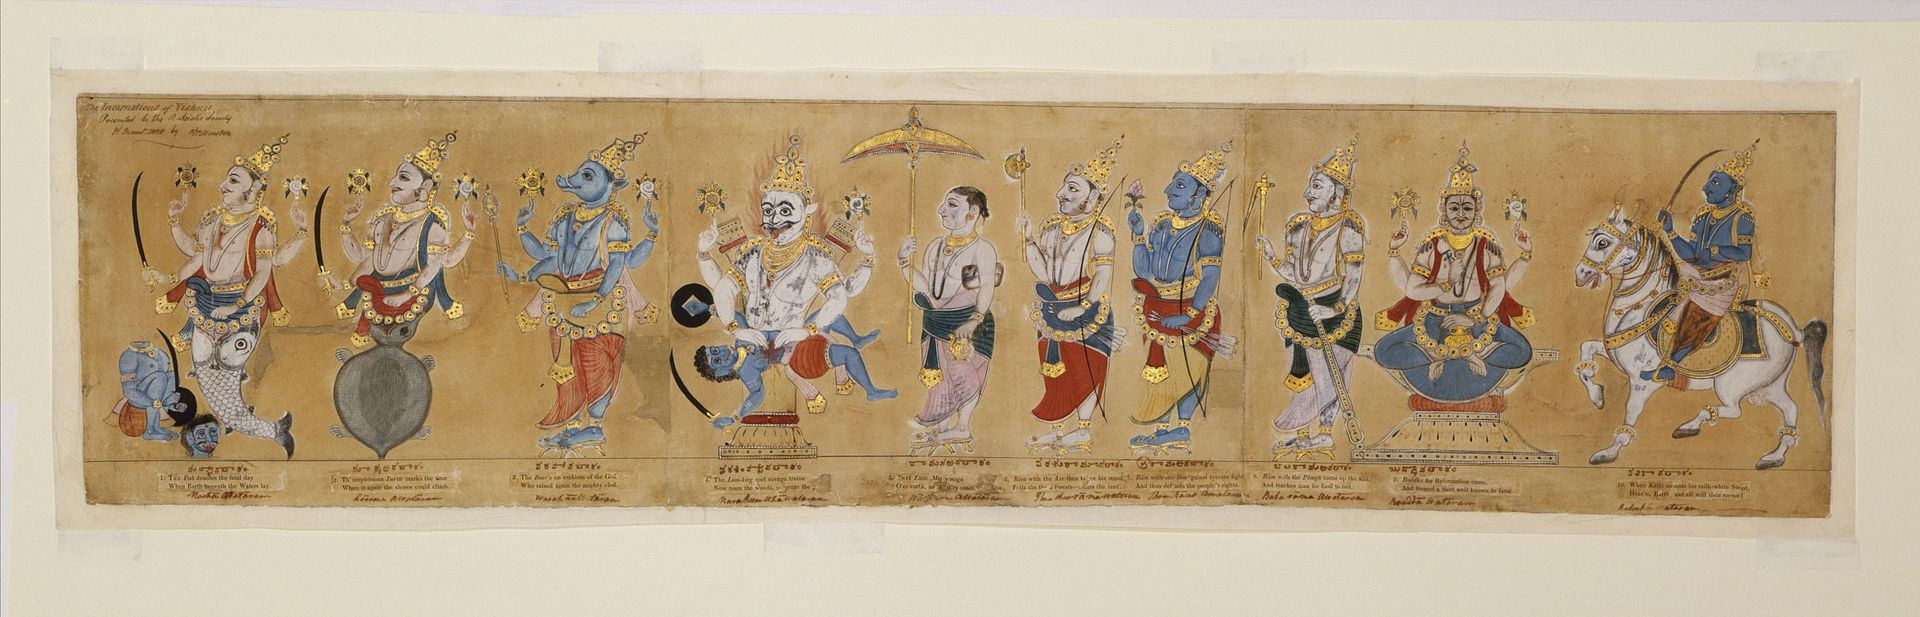 ten incarnations of vishnu Ten incarnations of vishnu based on an animation project i did in 2003 as part of my mfa thesis, these paintings depict ten incarnations of hindu god vishnu.